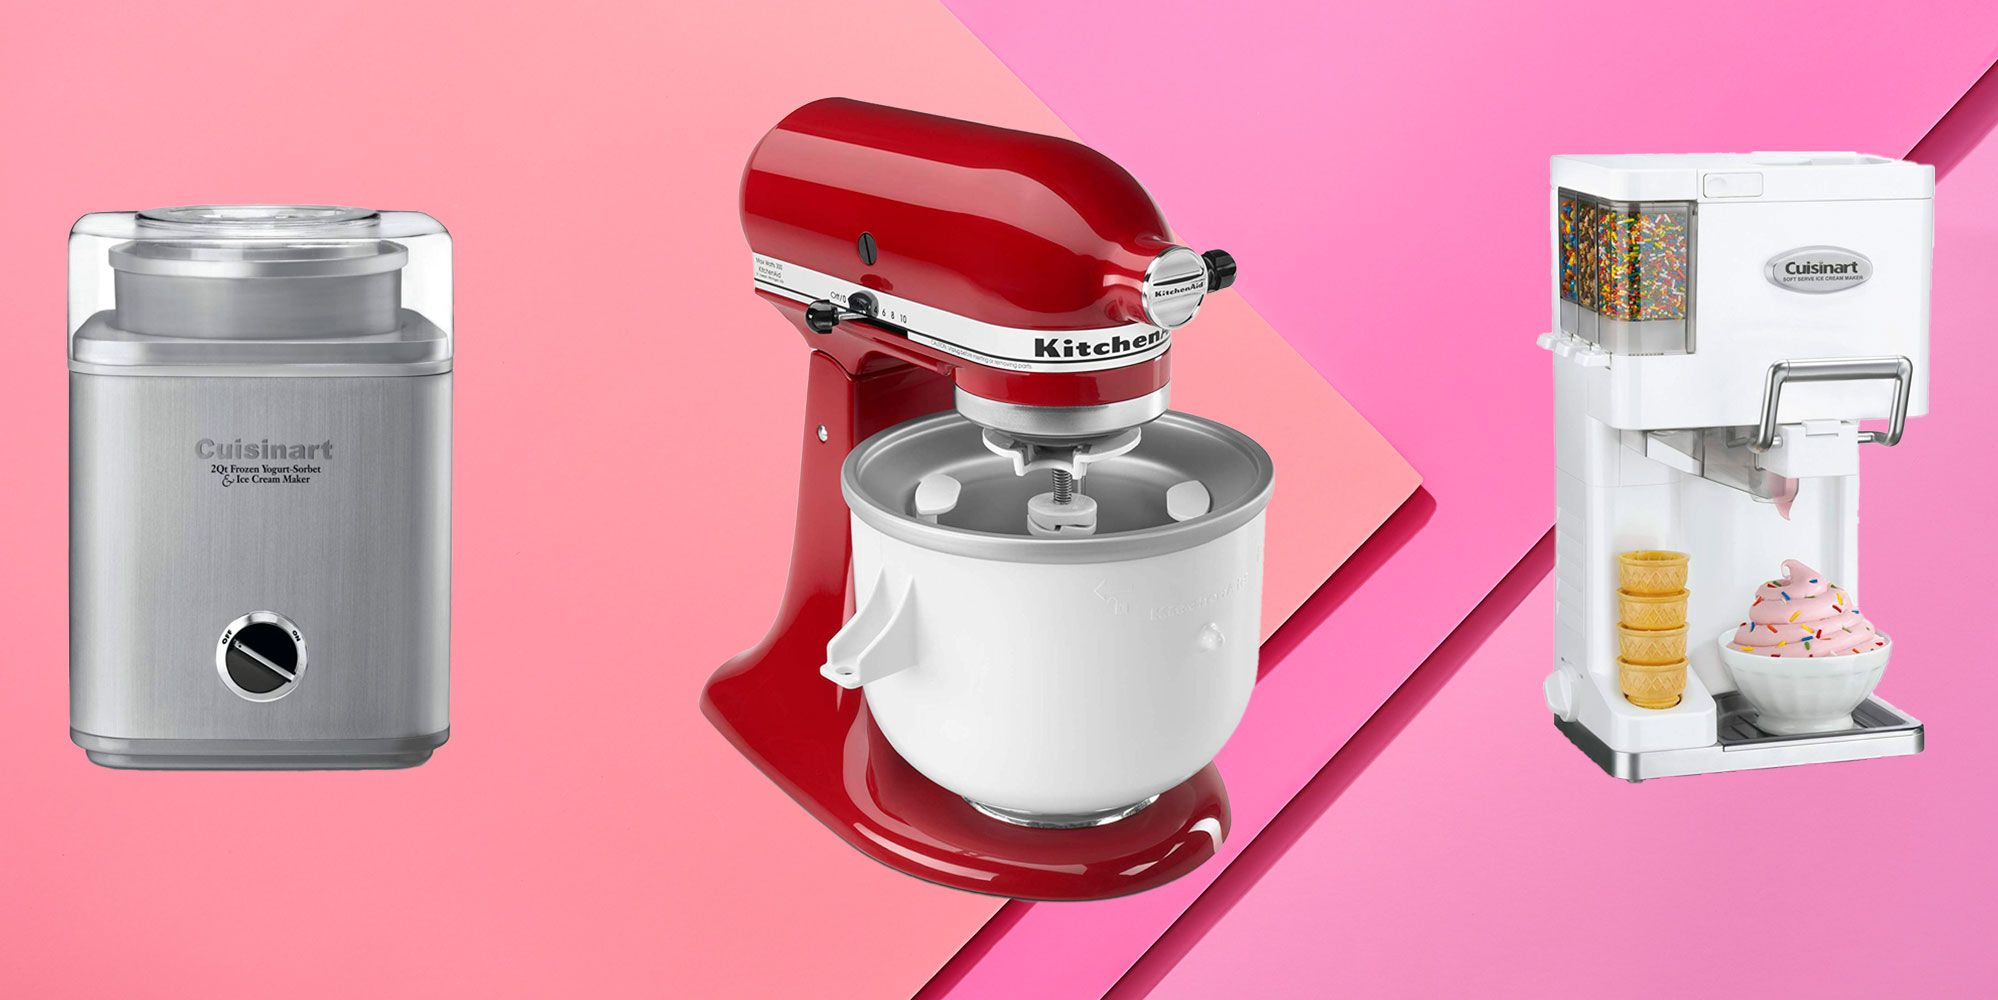 The 8 Best Ice Cream Makers To Buy For At-Home Use In 2020